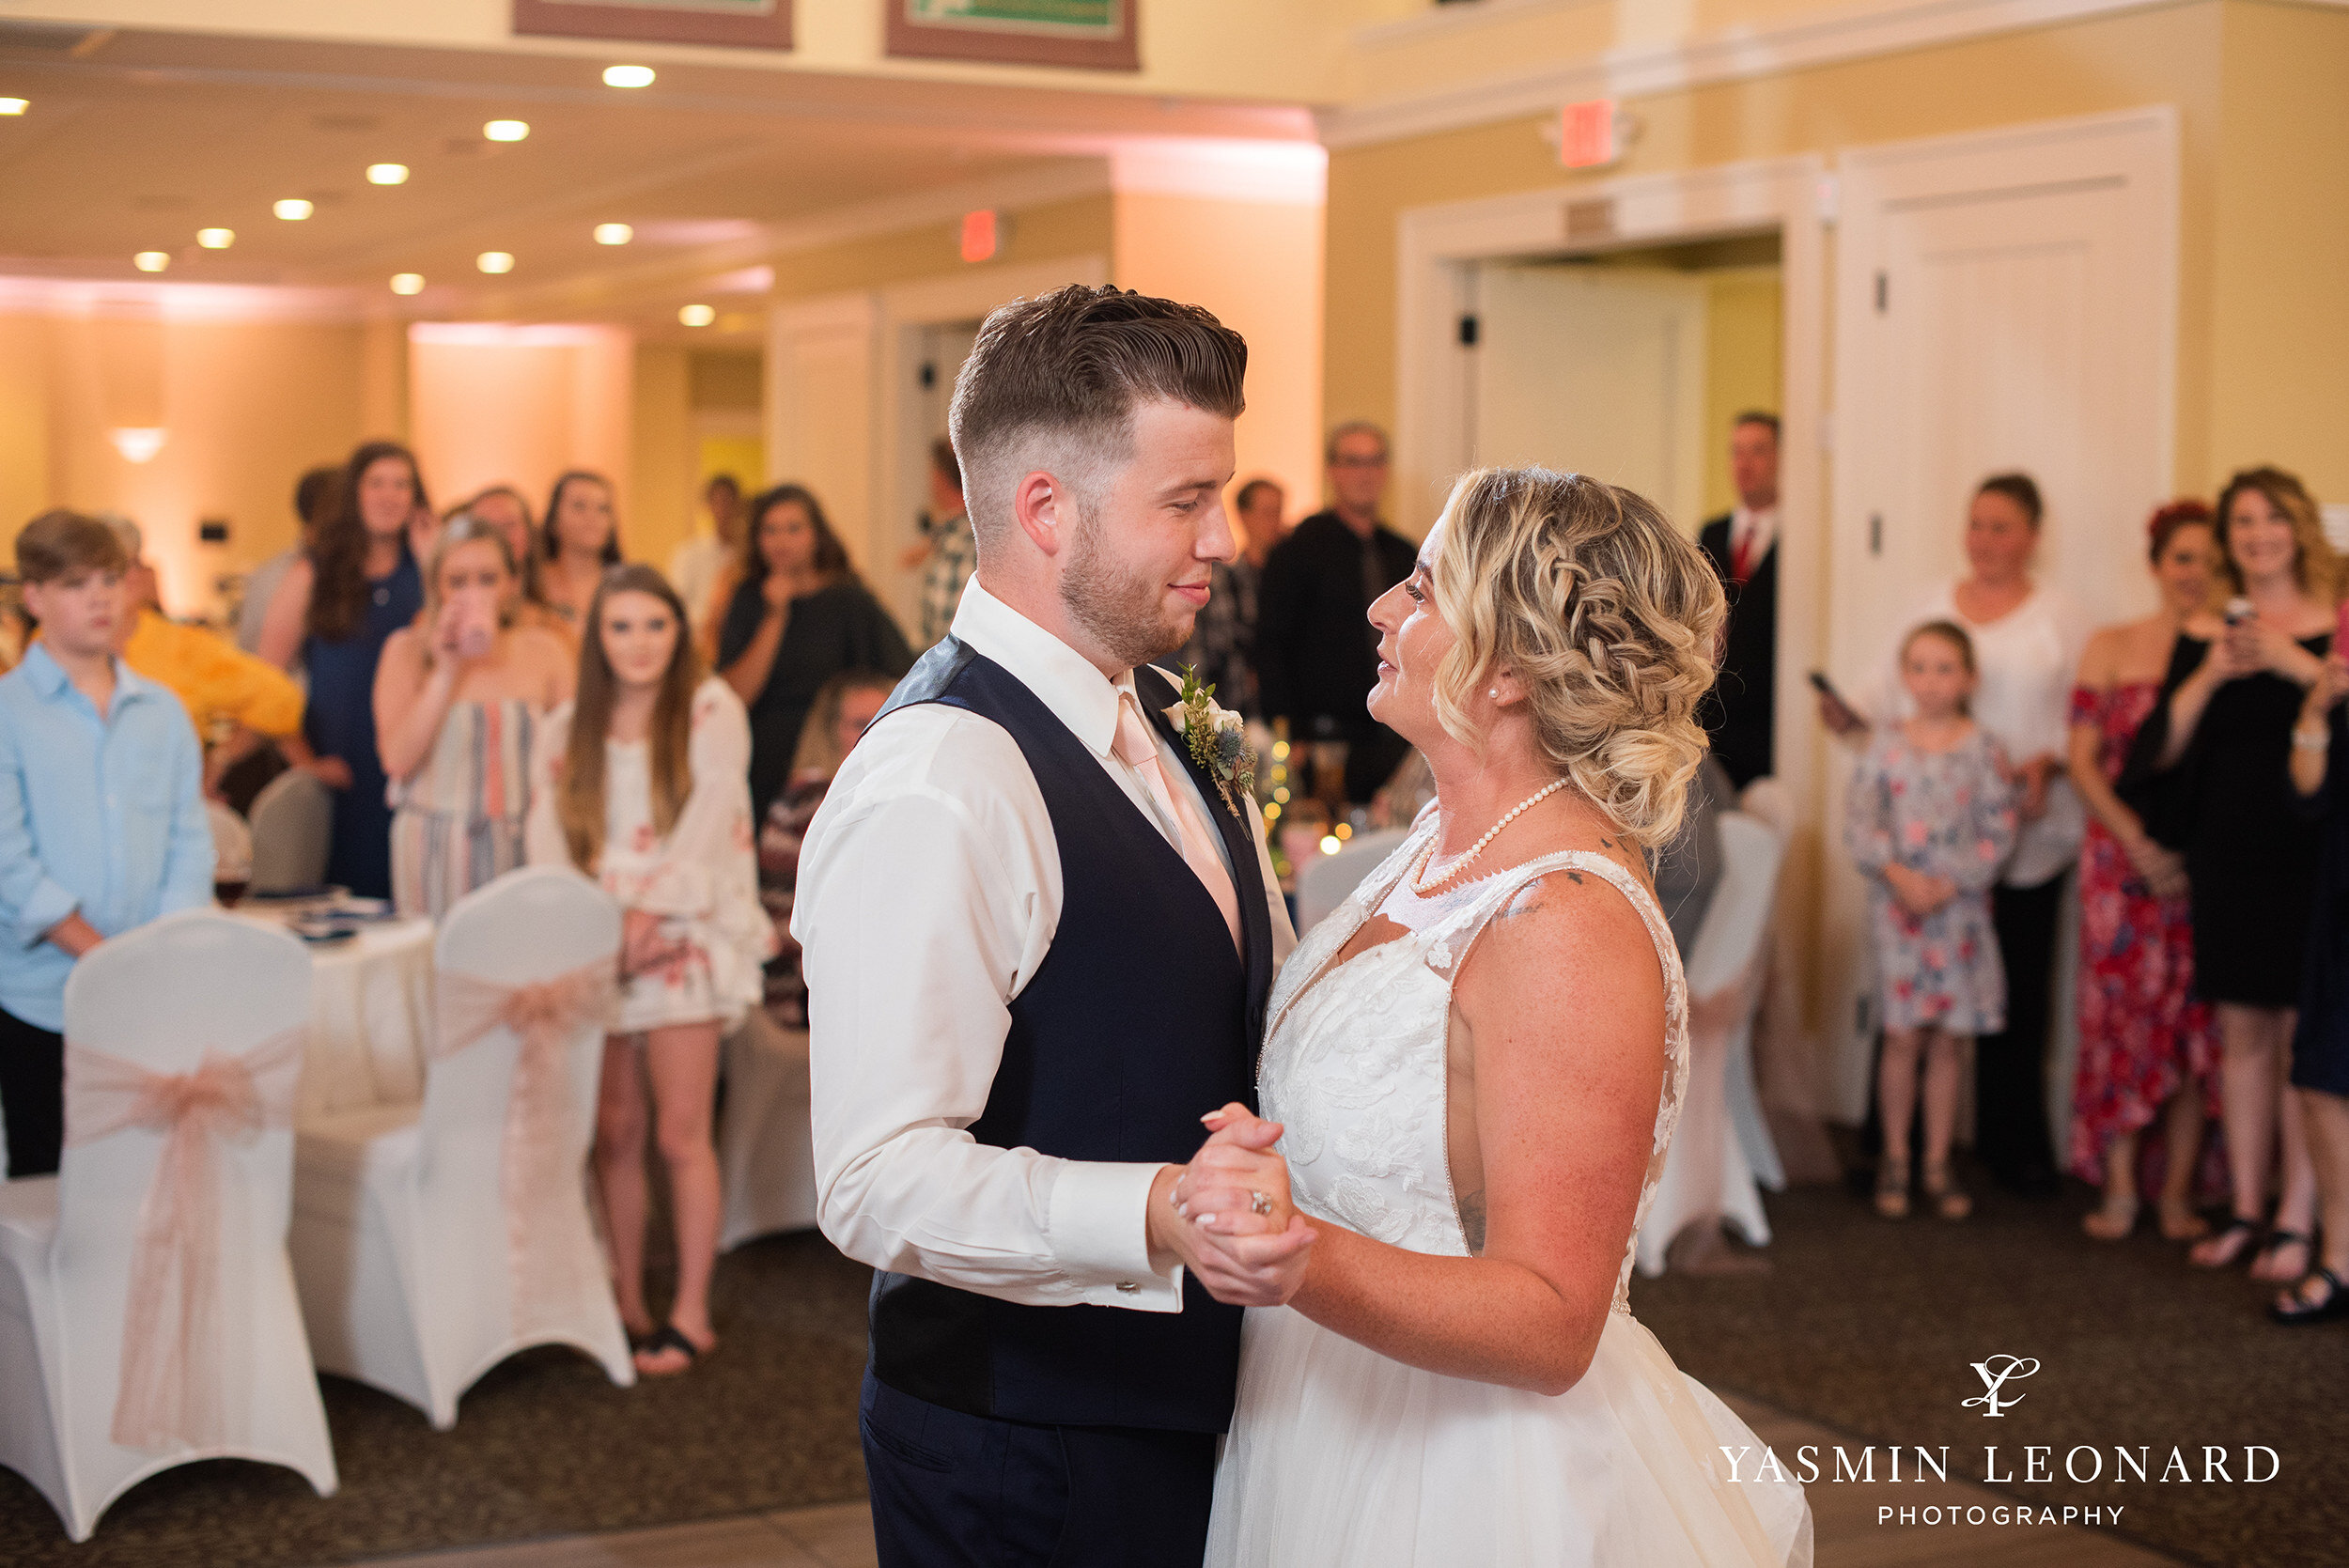 Brittnee and Tyler - Yasmin Leonard Photography-42.jpg